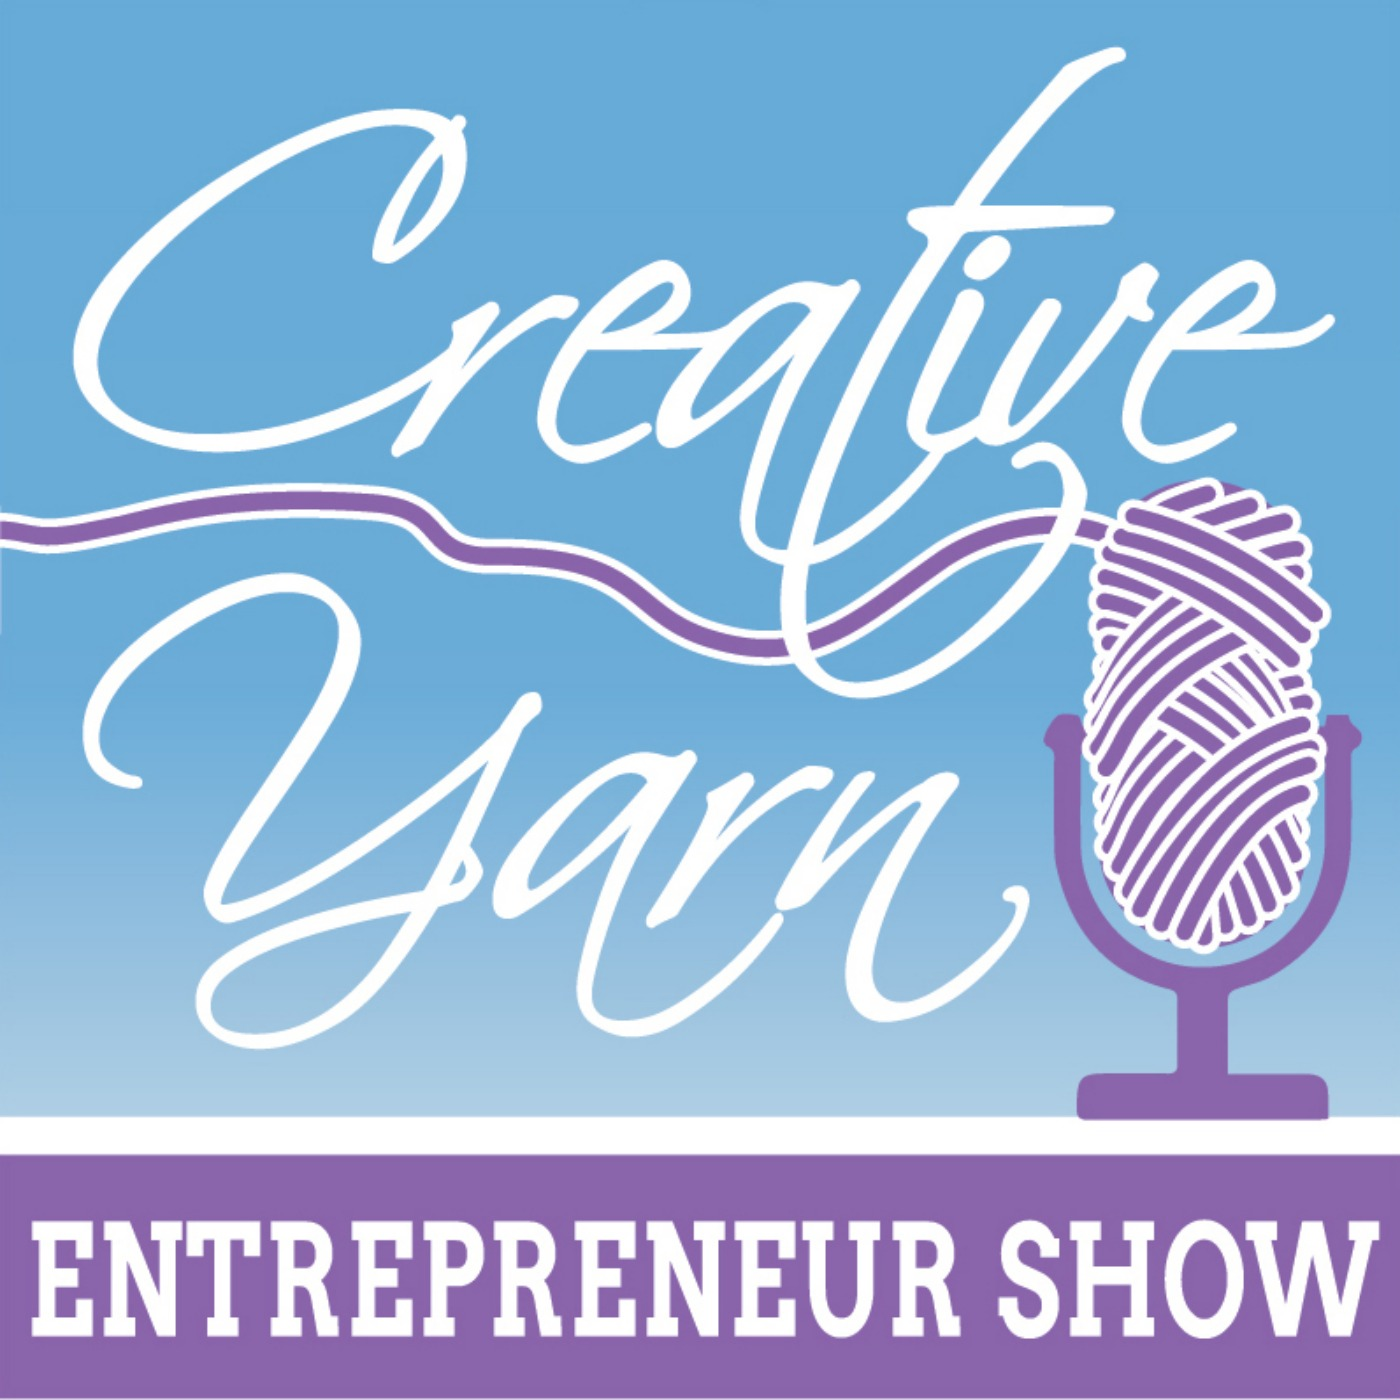 Episode 36: Crochet & Knitting Design & Self-Publishing Mini Series 1: Planning Your Pattern - The Creative Yarn Entrepreneur Show